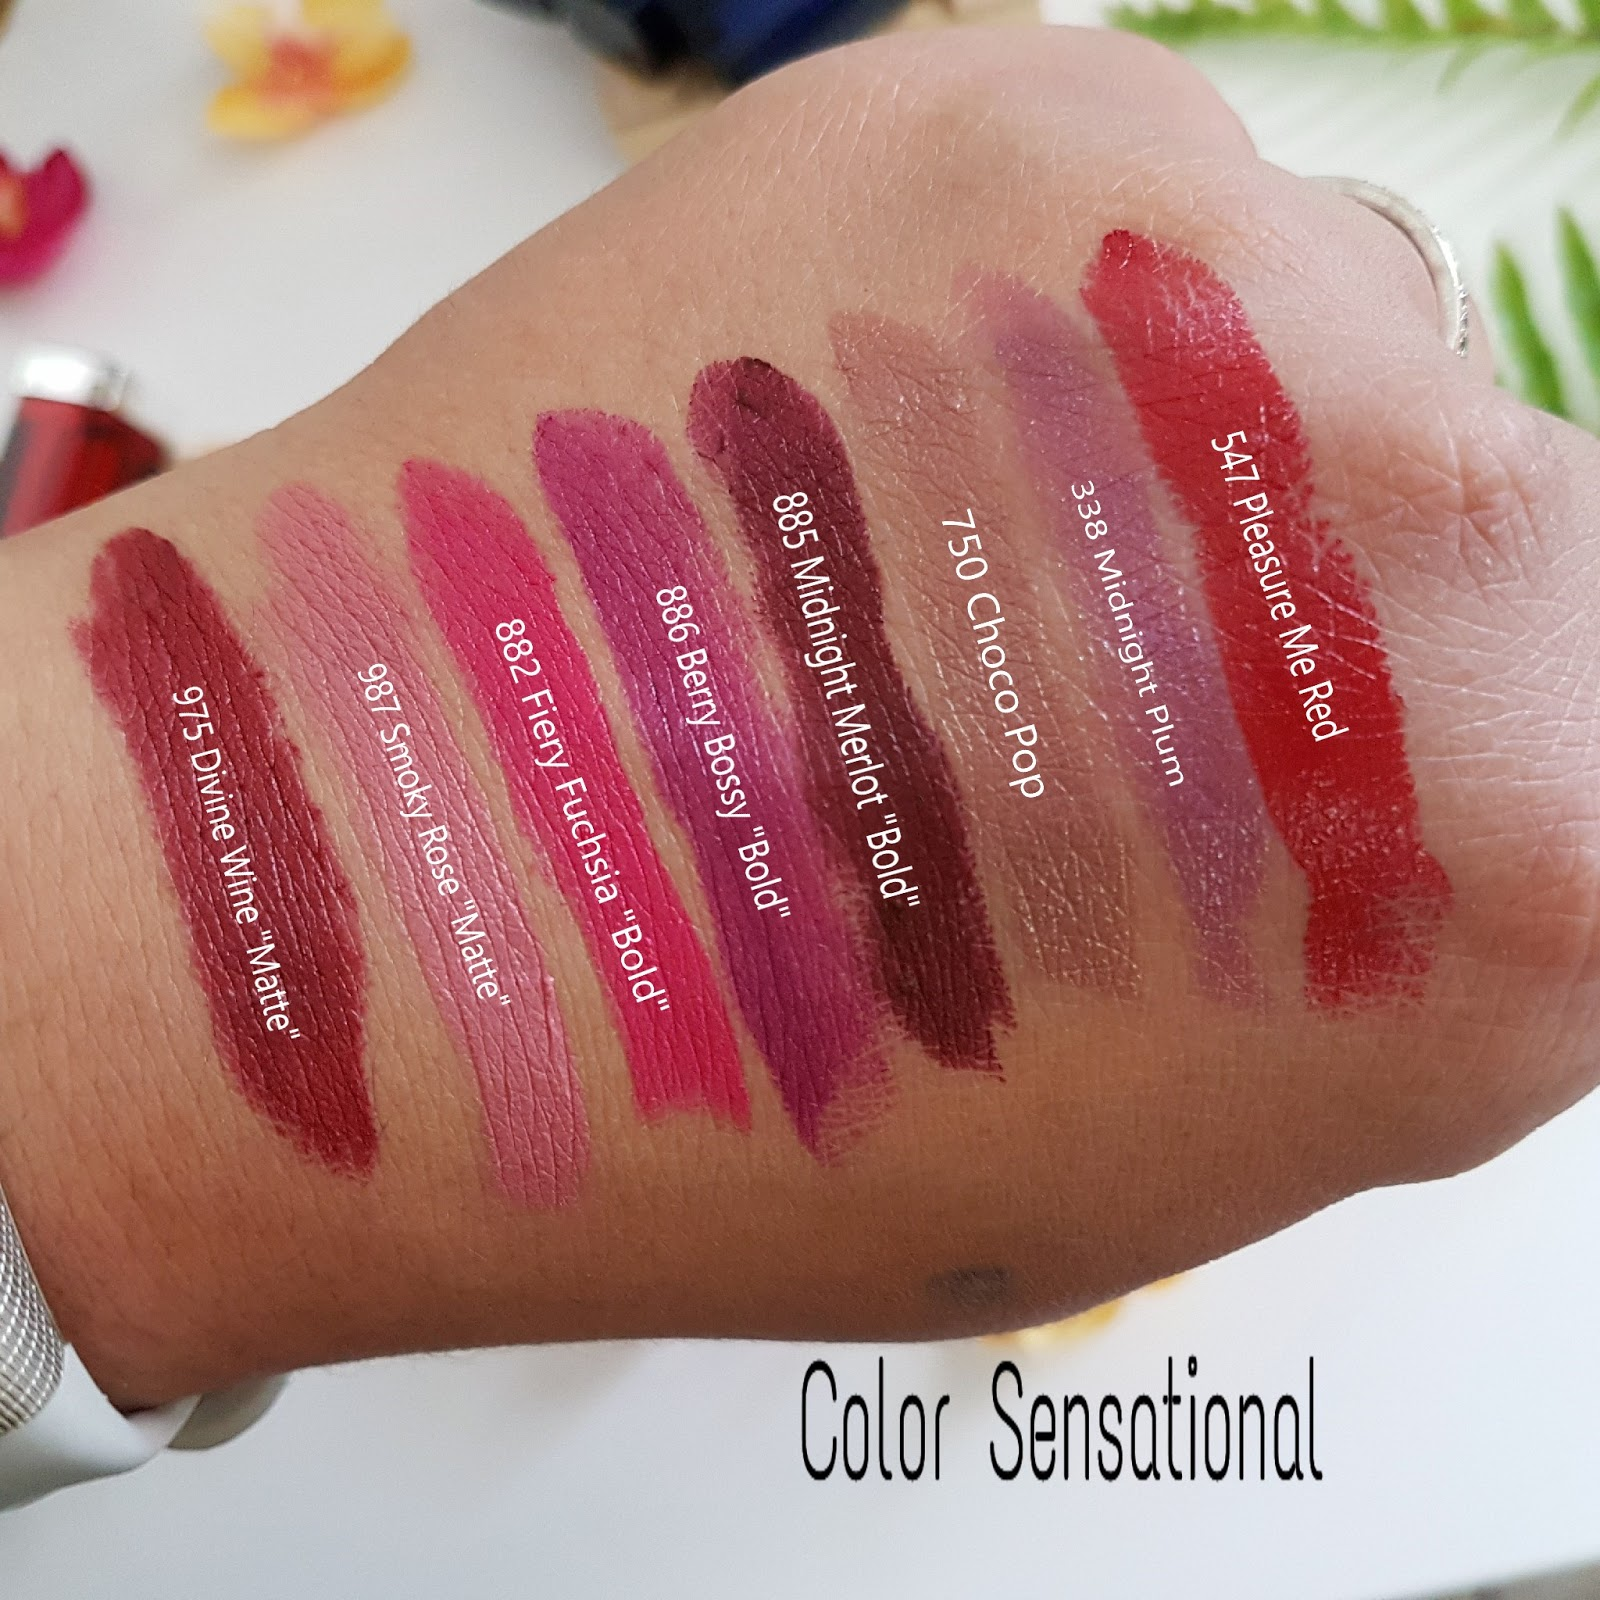 avis_colorsensational_maybelline_swatch_concours_mama_syca_beaute